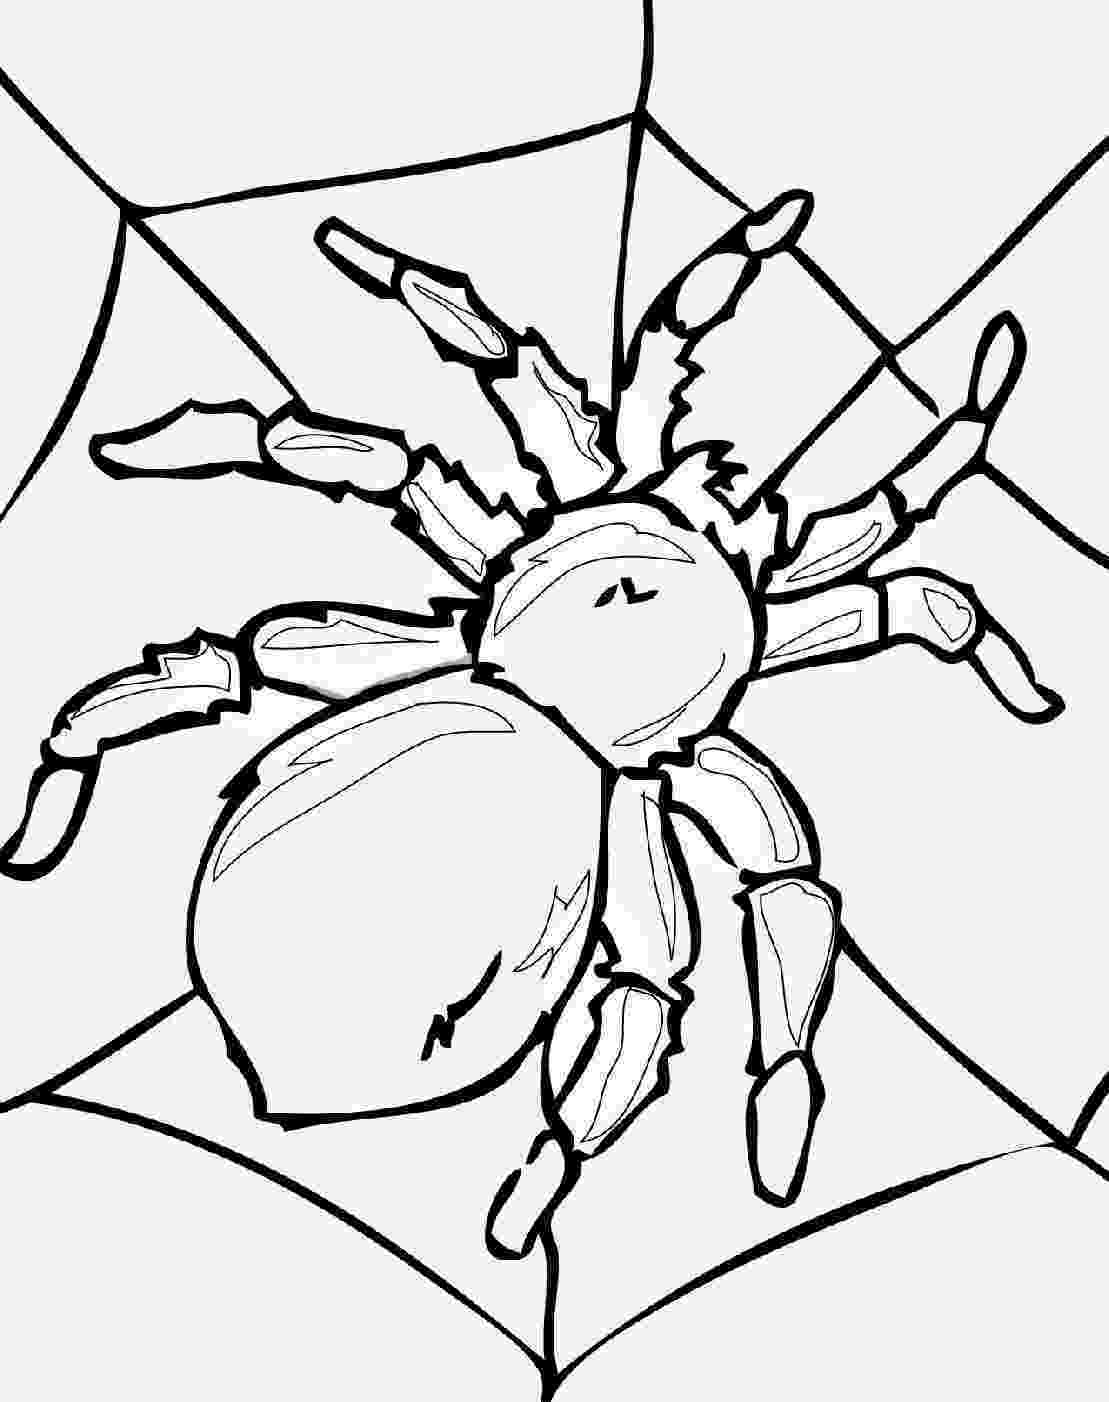 insect colouring page virus coloring pages coloring pages insect colouring page